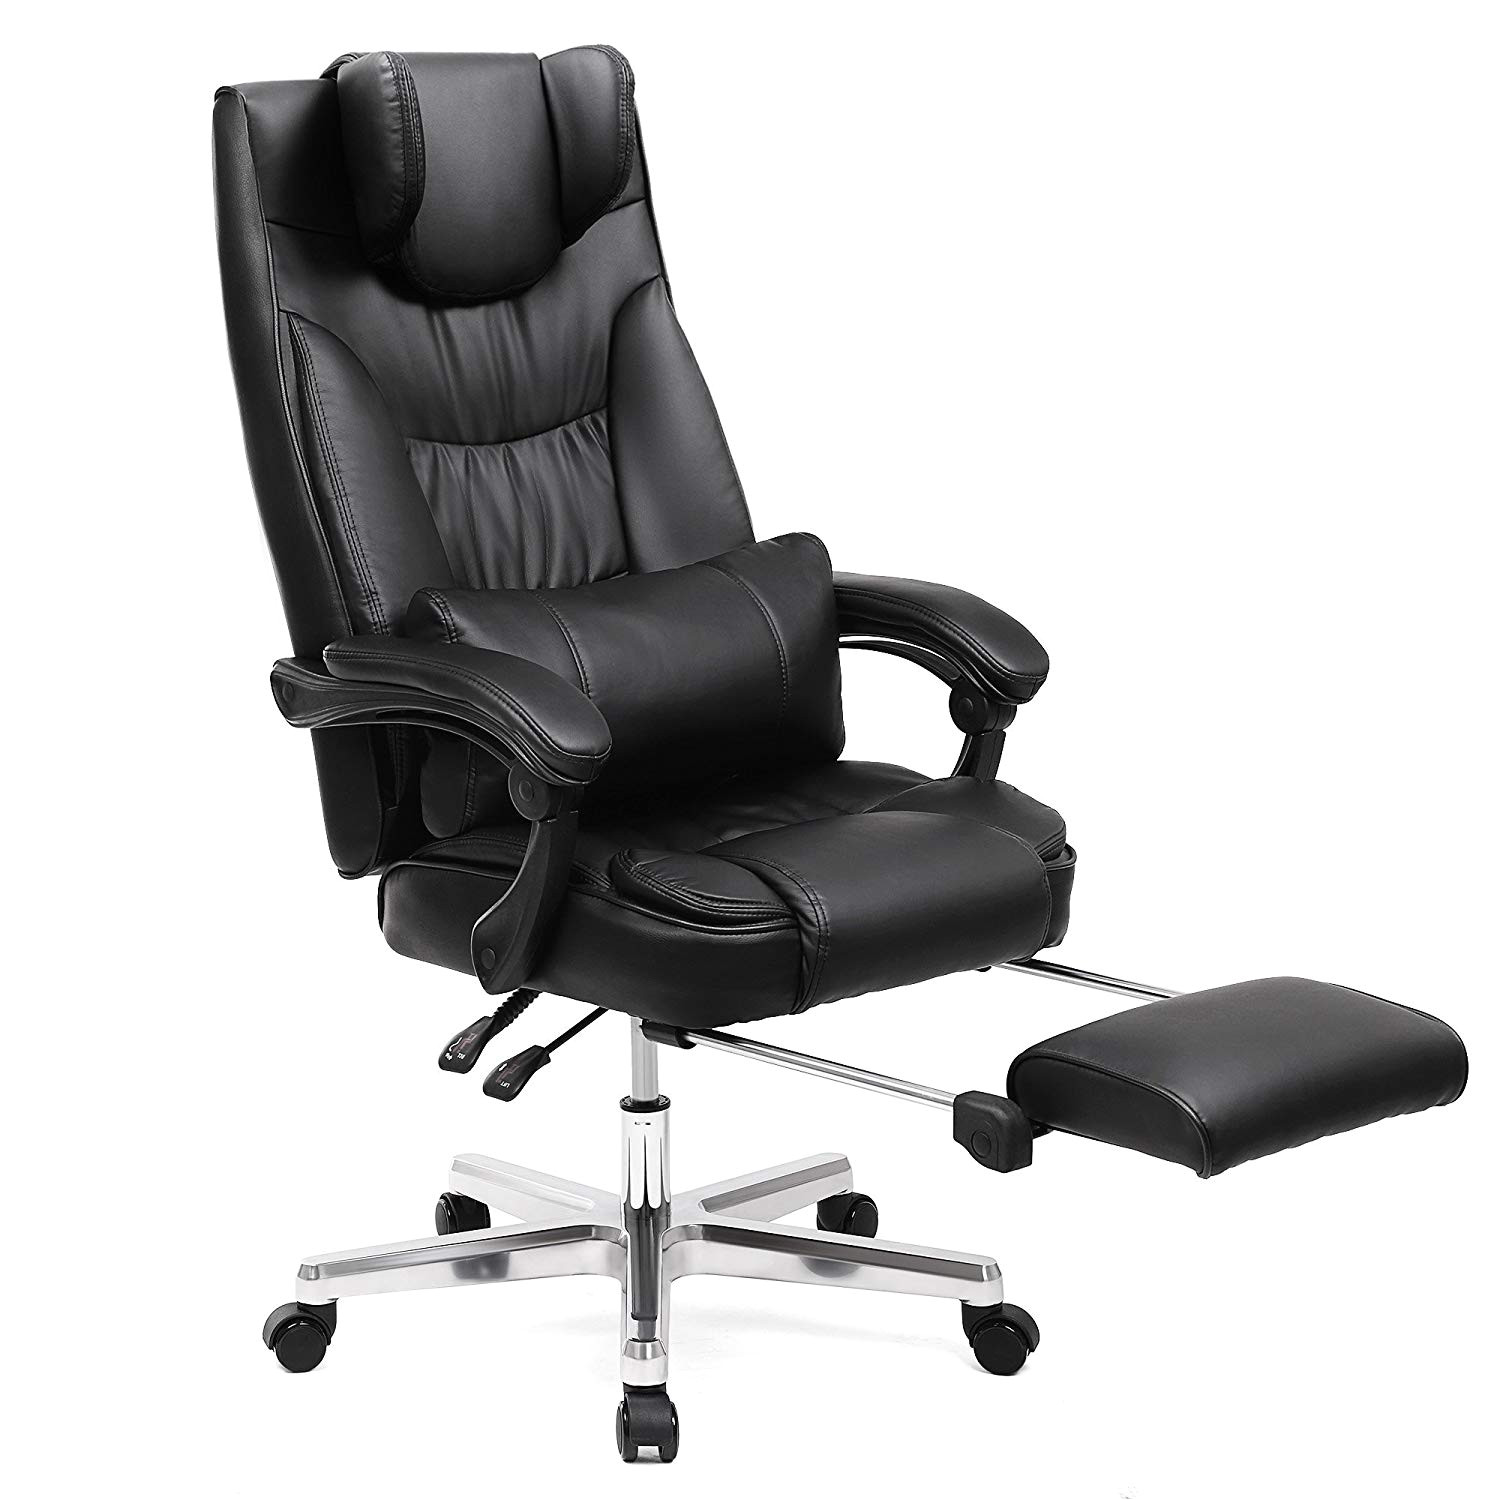 songmics ergonomic office chair executive gaming swivel chair with foldable headrest pu extra large black black 75 amazon co uk kitchen home